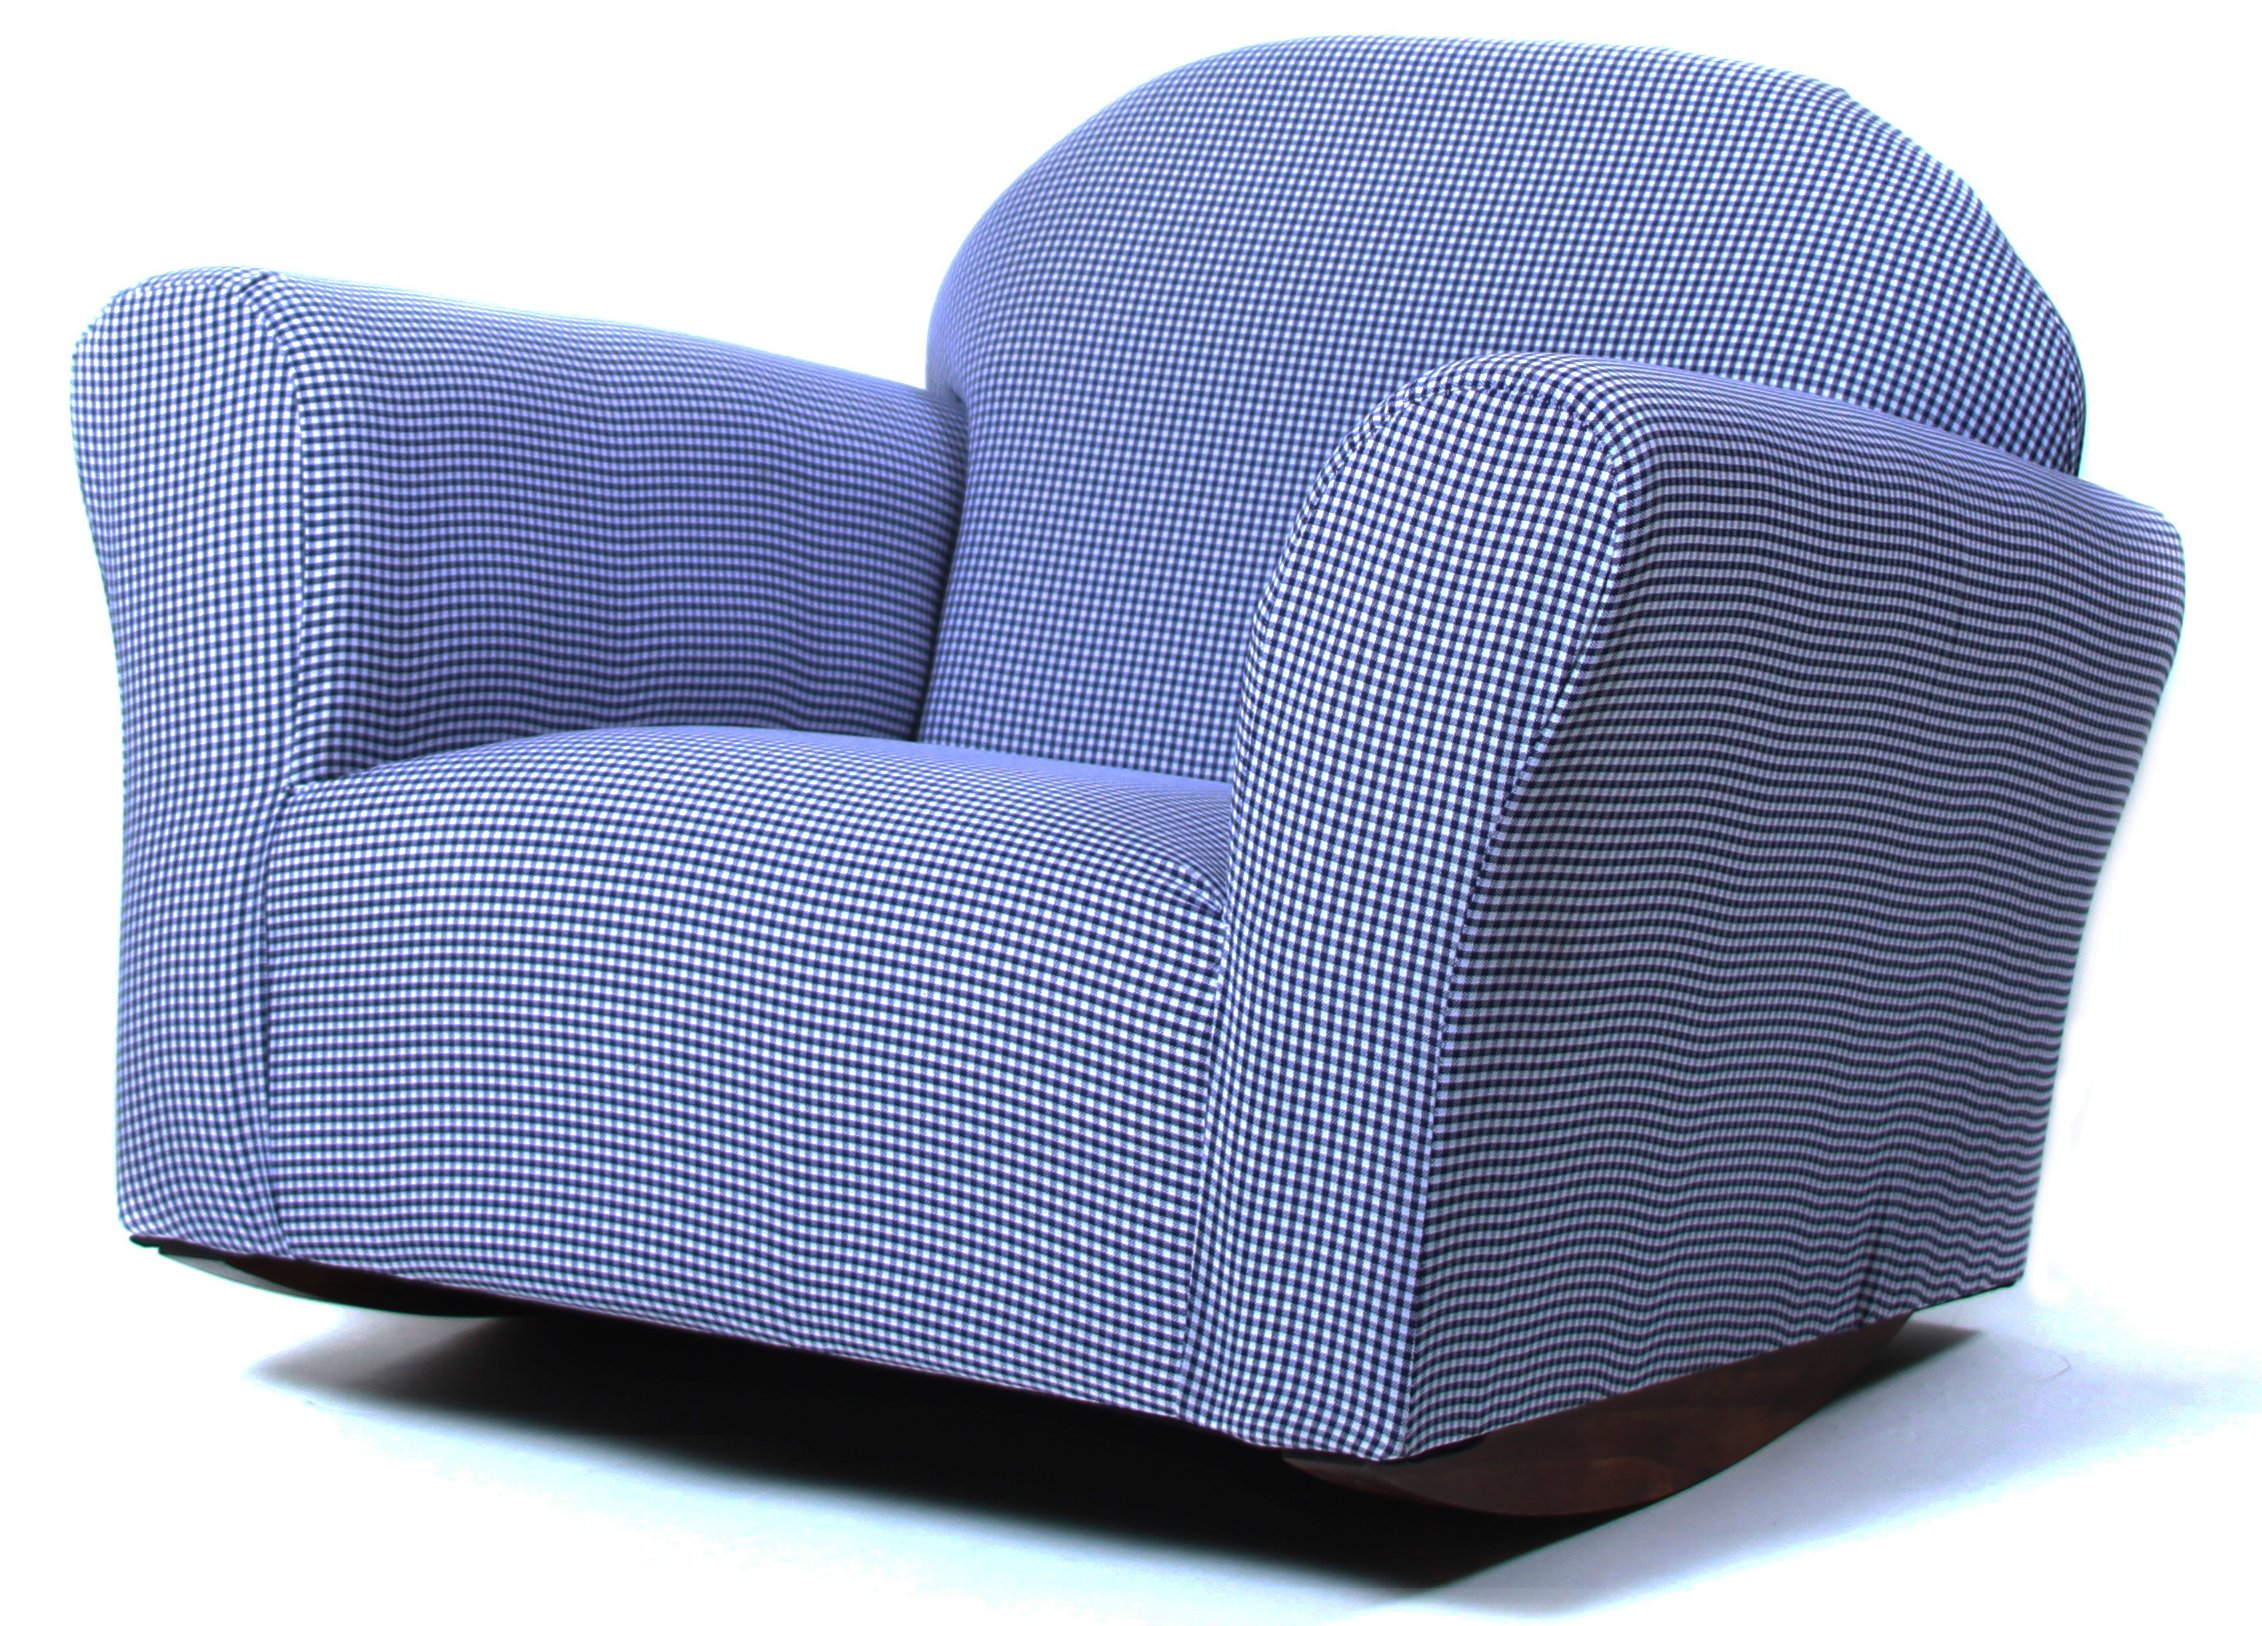 Gingham Chair Rocking Chair Gingham Navy Fantasy Furniture Roundy Glider